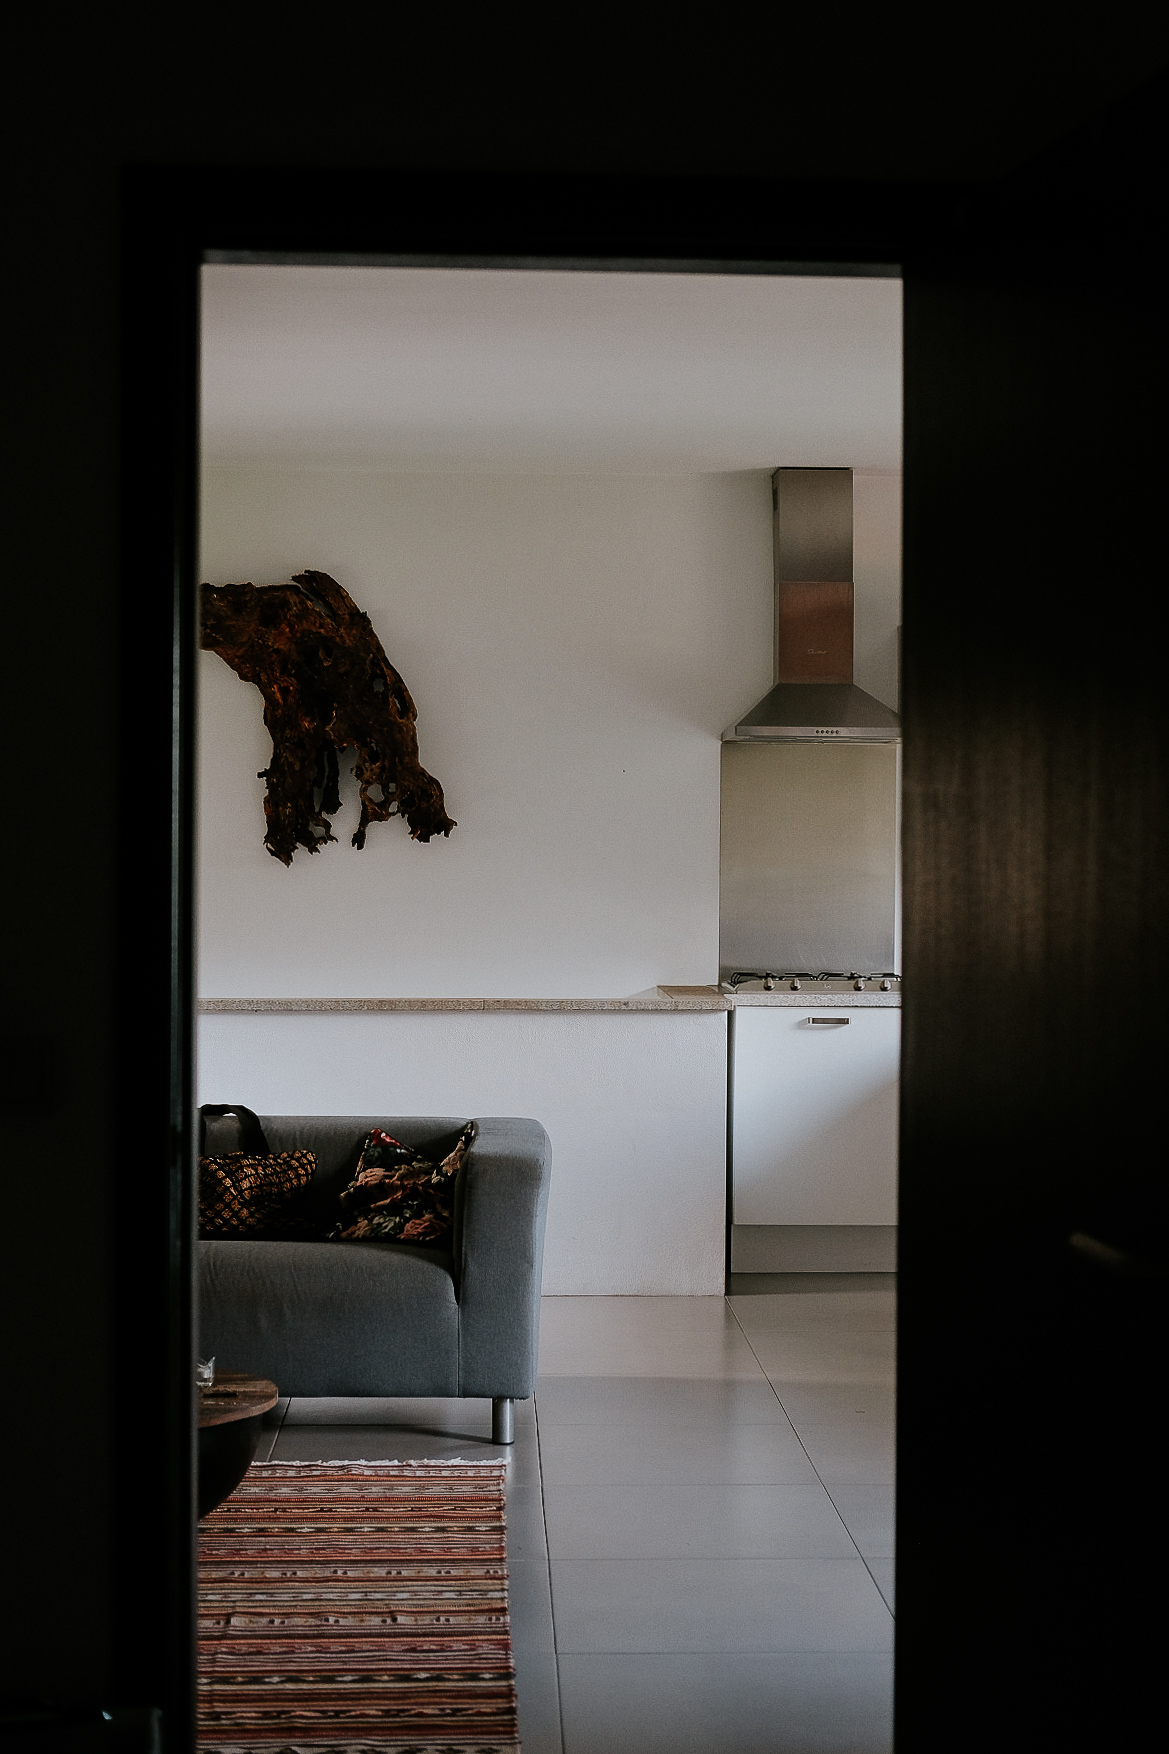 Quinta Olivia Airbnb review opinion,